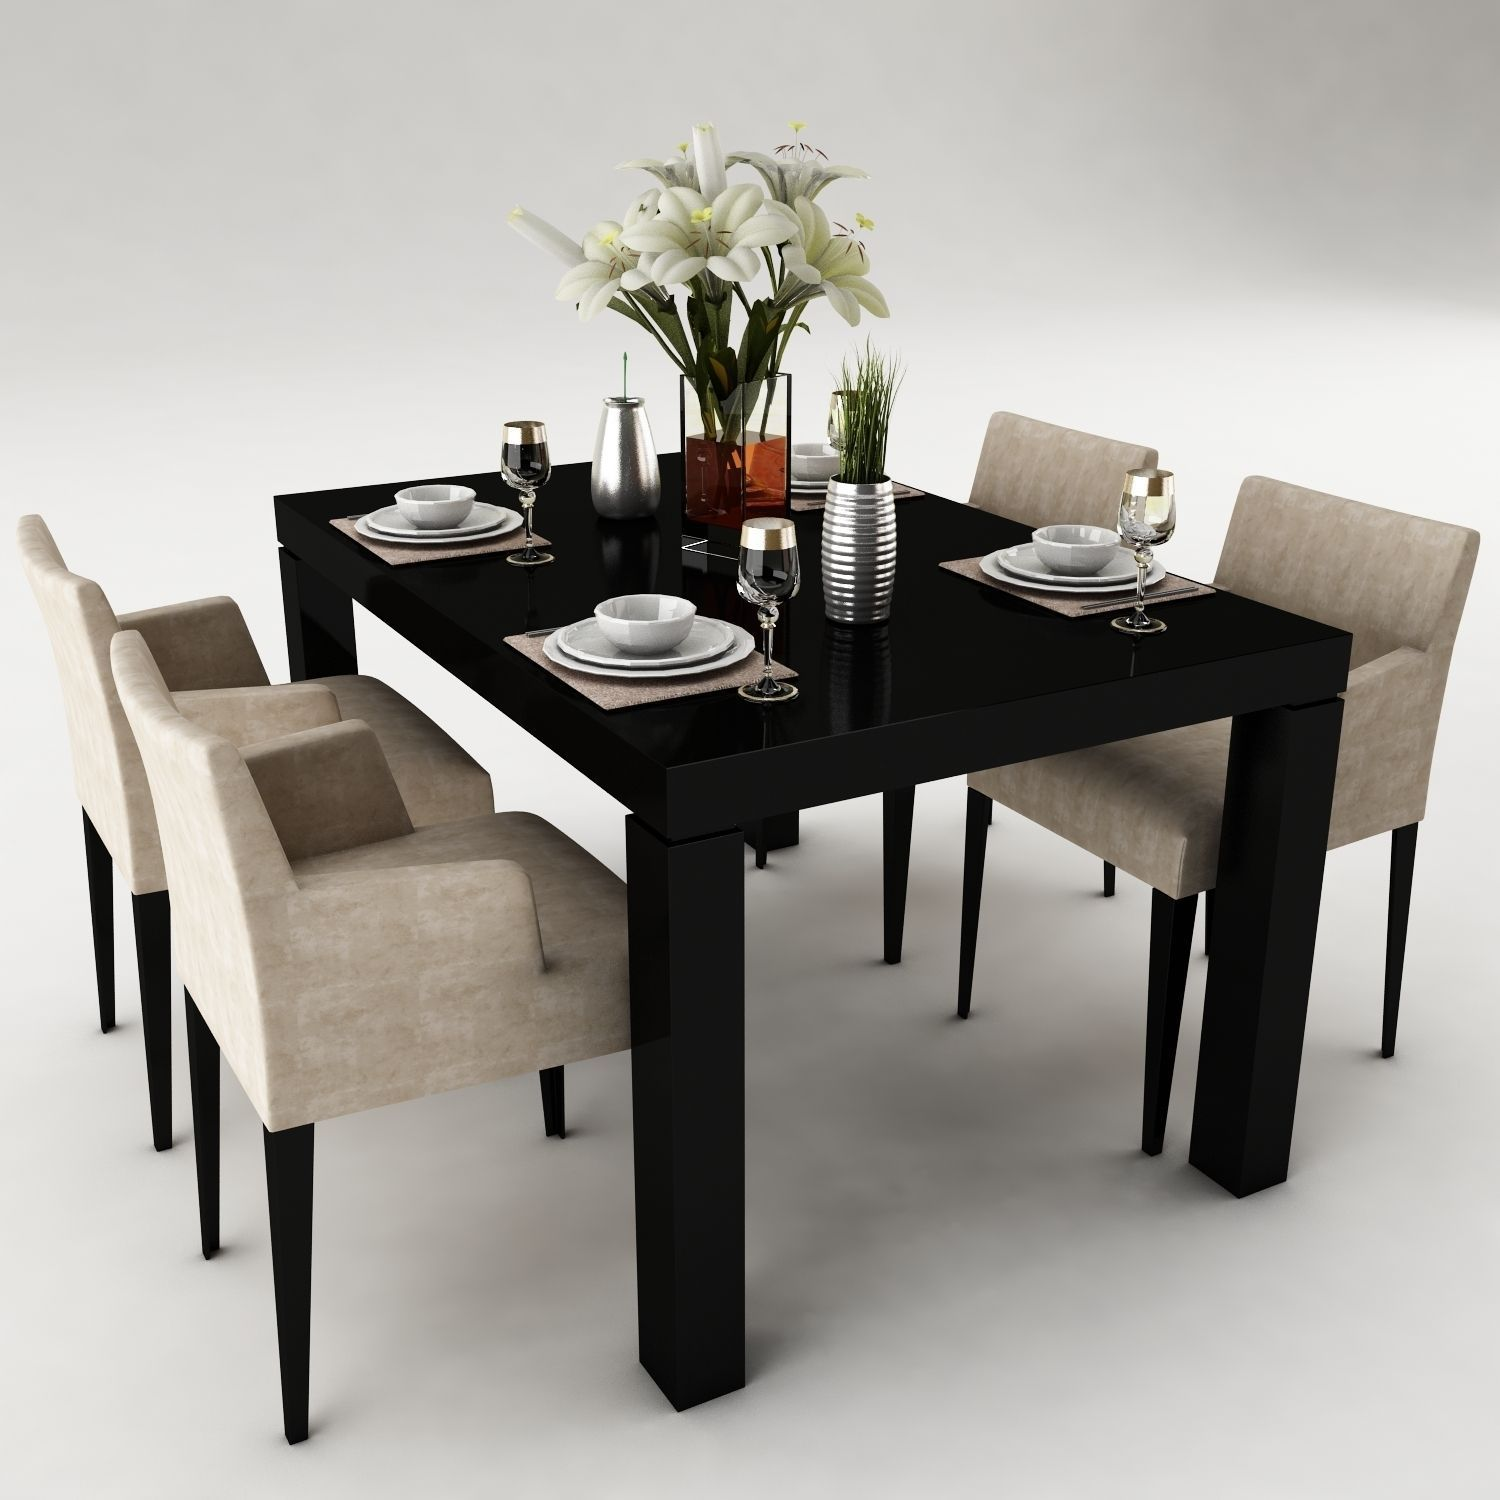 Dining table 50 3d model max obj 3ds fbx for Dining table latest model